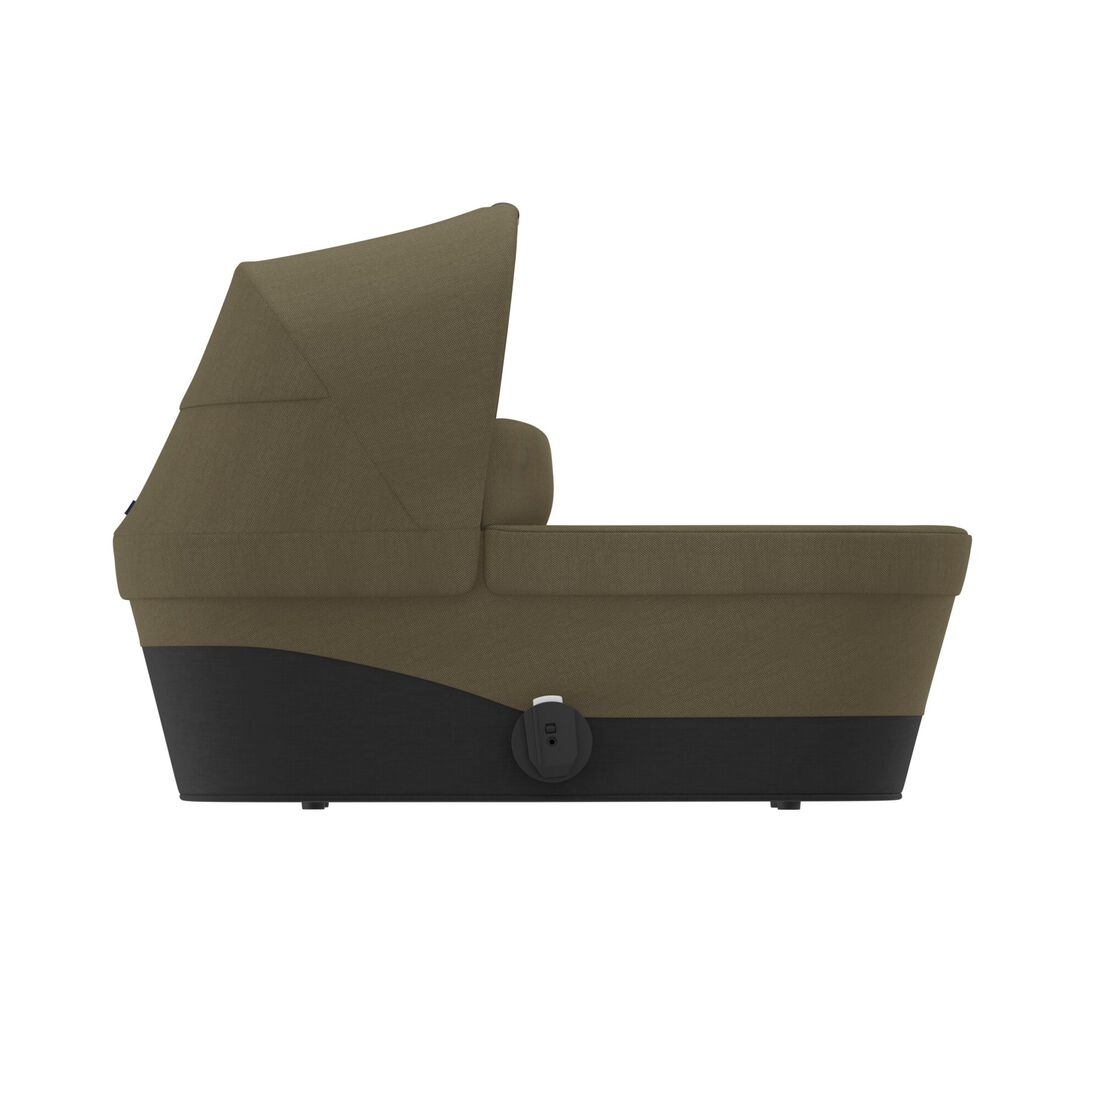 CYBEX Gazelle S Cot - Classic Beige in Classic Beige large image number 3